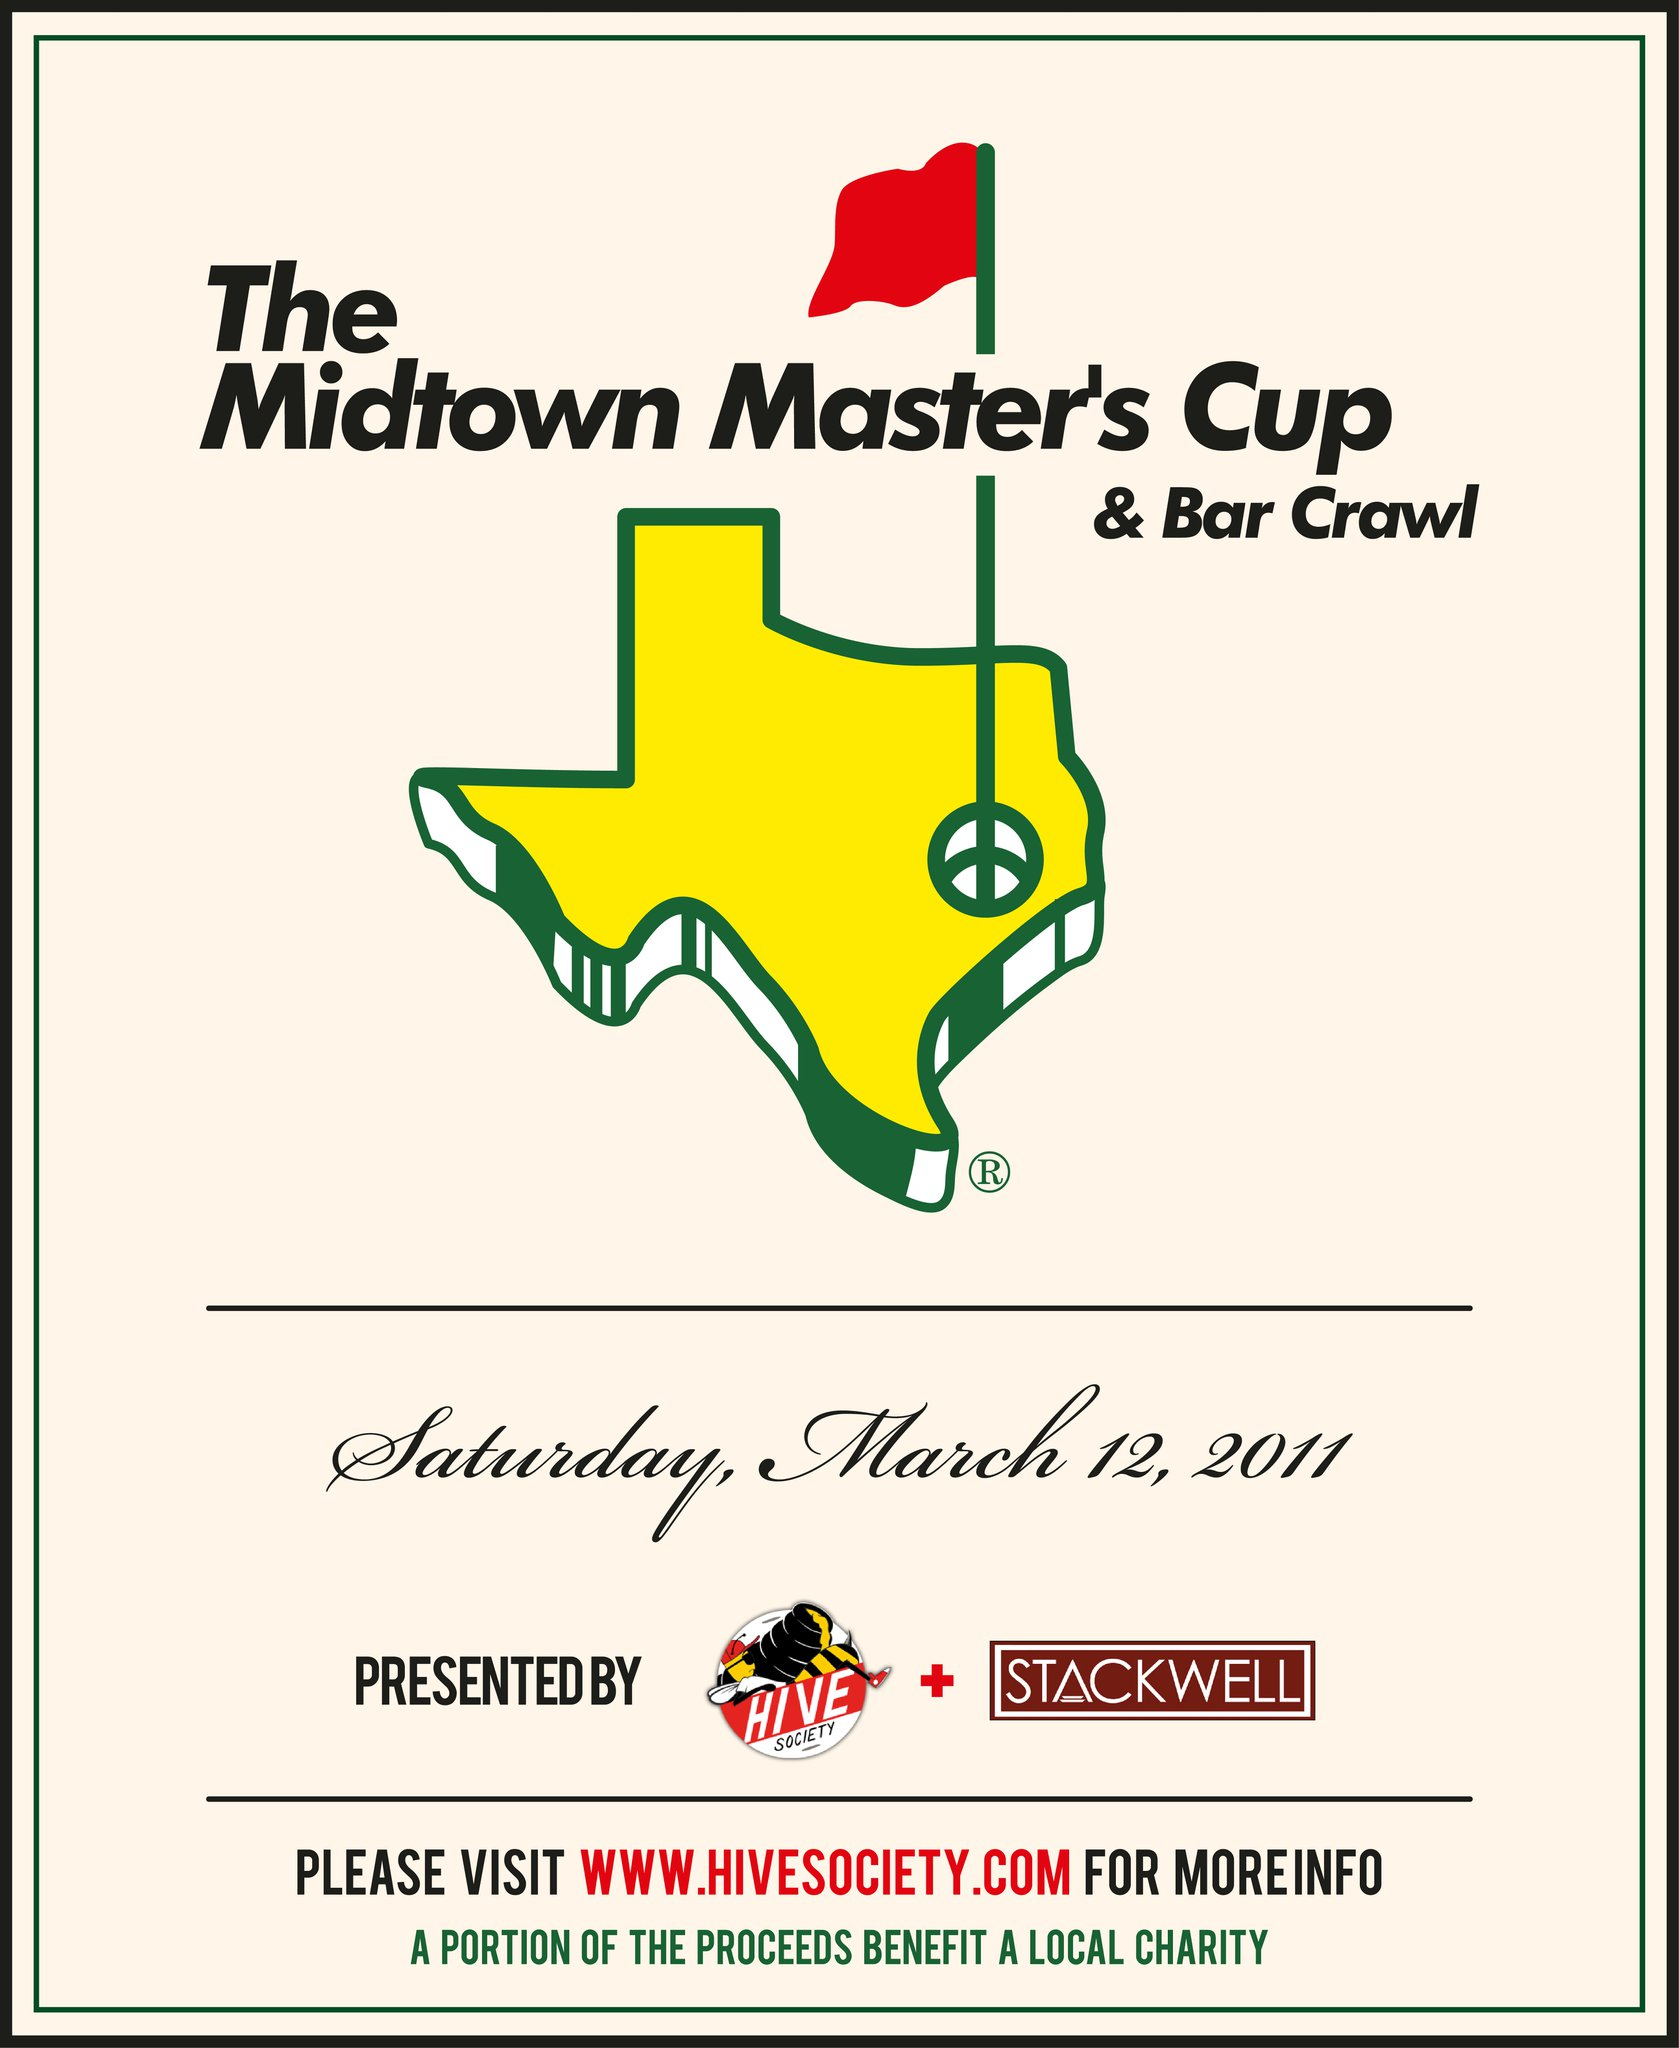 The Midtown Master's Cup